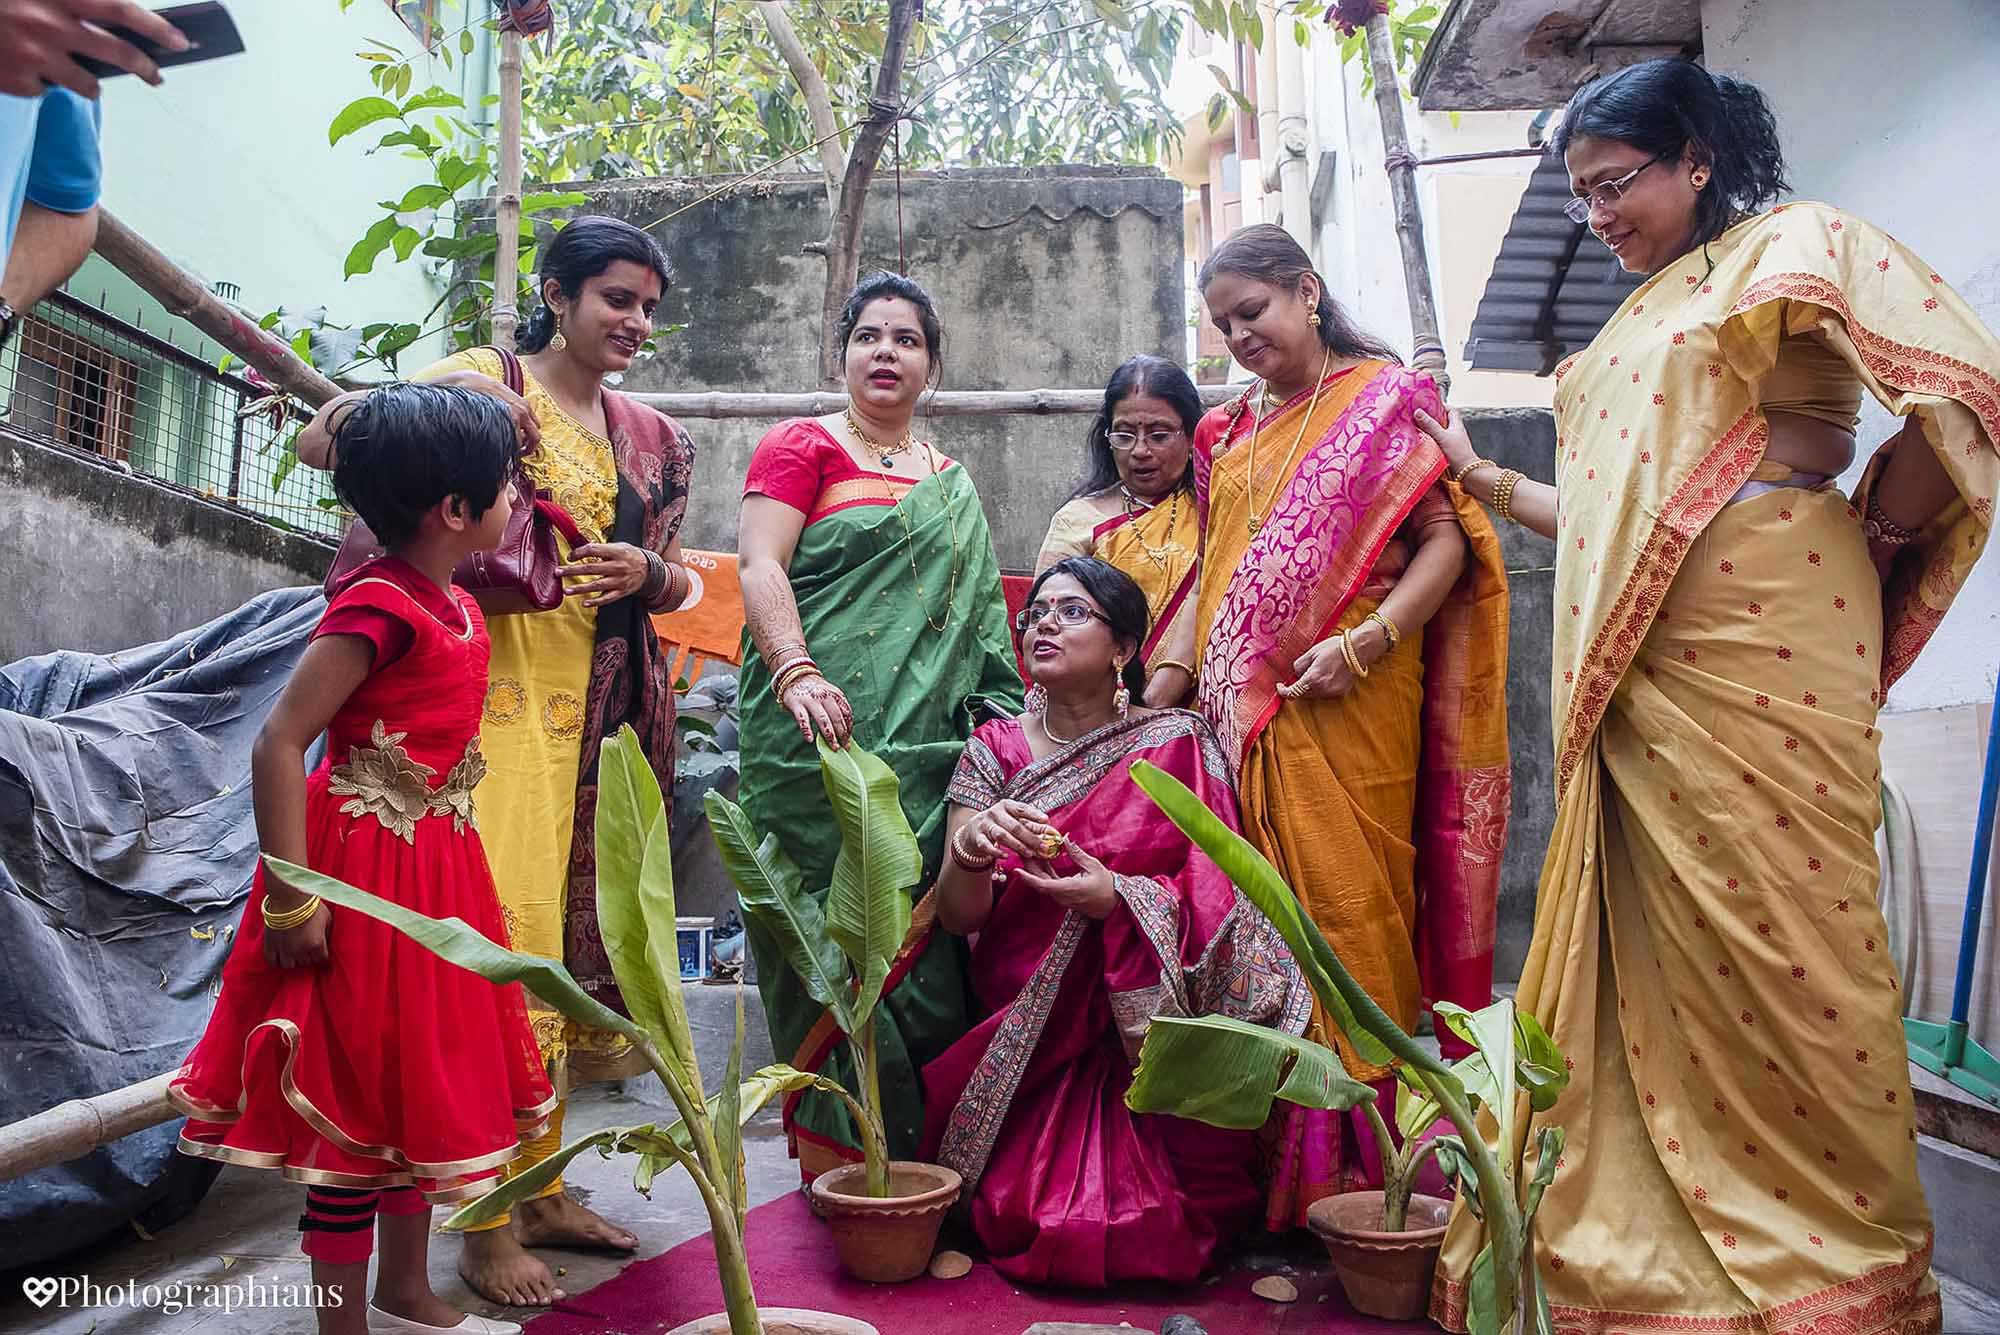 Bengali_Wedding_Photography_Kolkata_Photographians_165